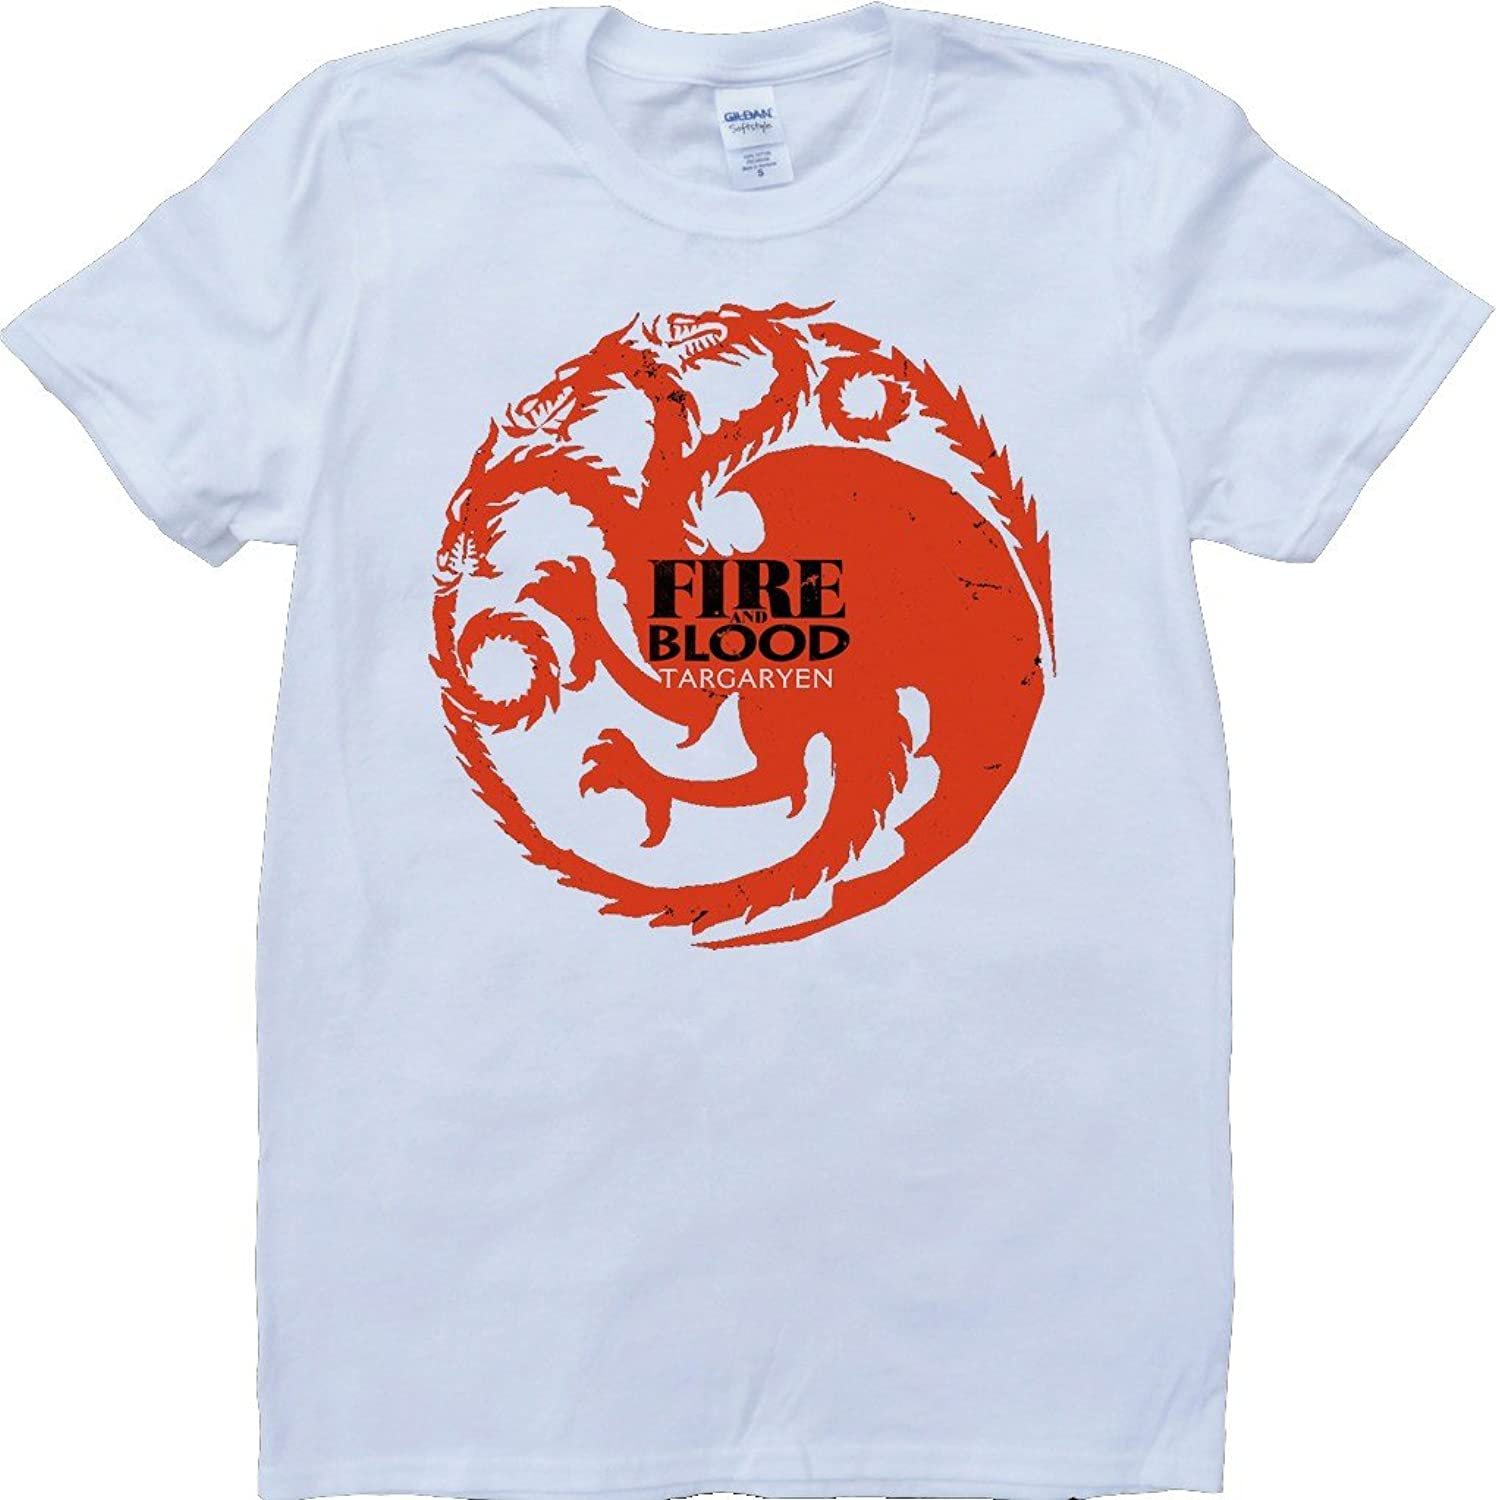 Game Of Thrones House Targaryen Fure And Blood Short Sleeve Custom Made T-Shirt